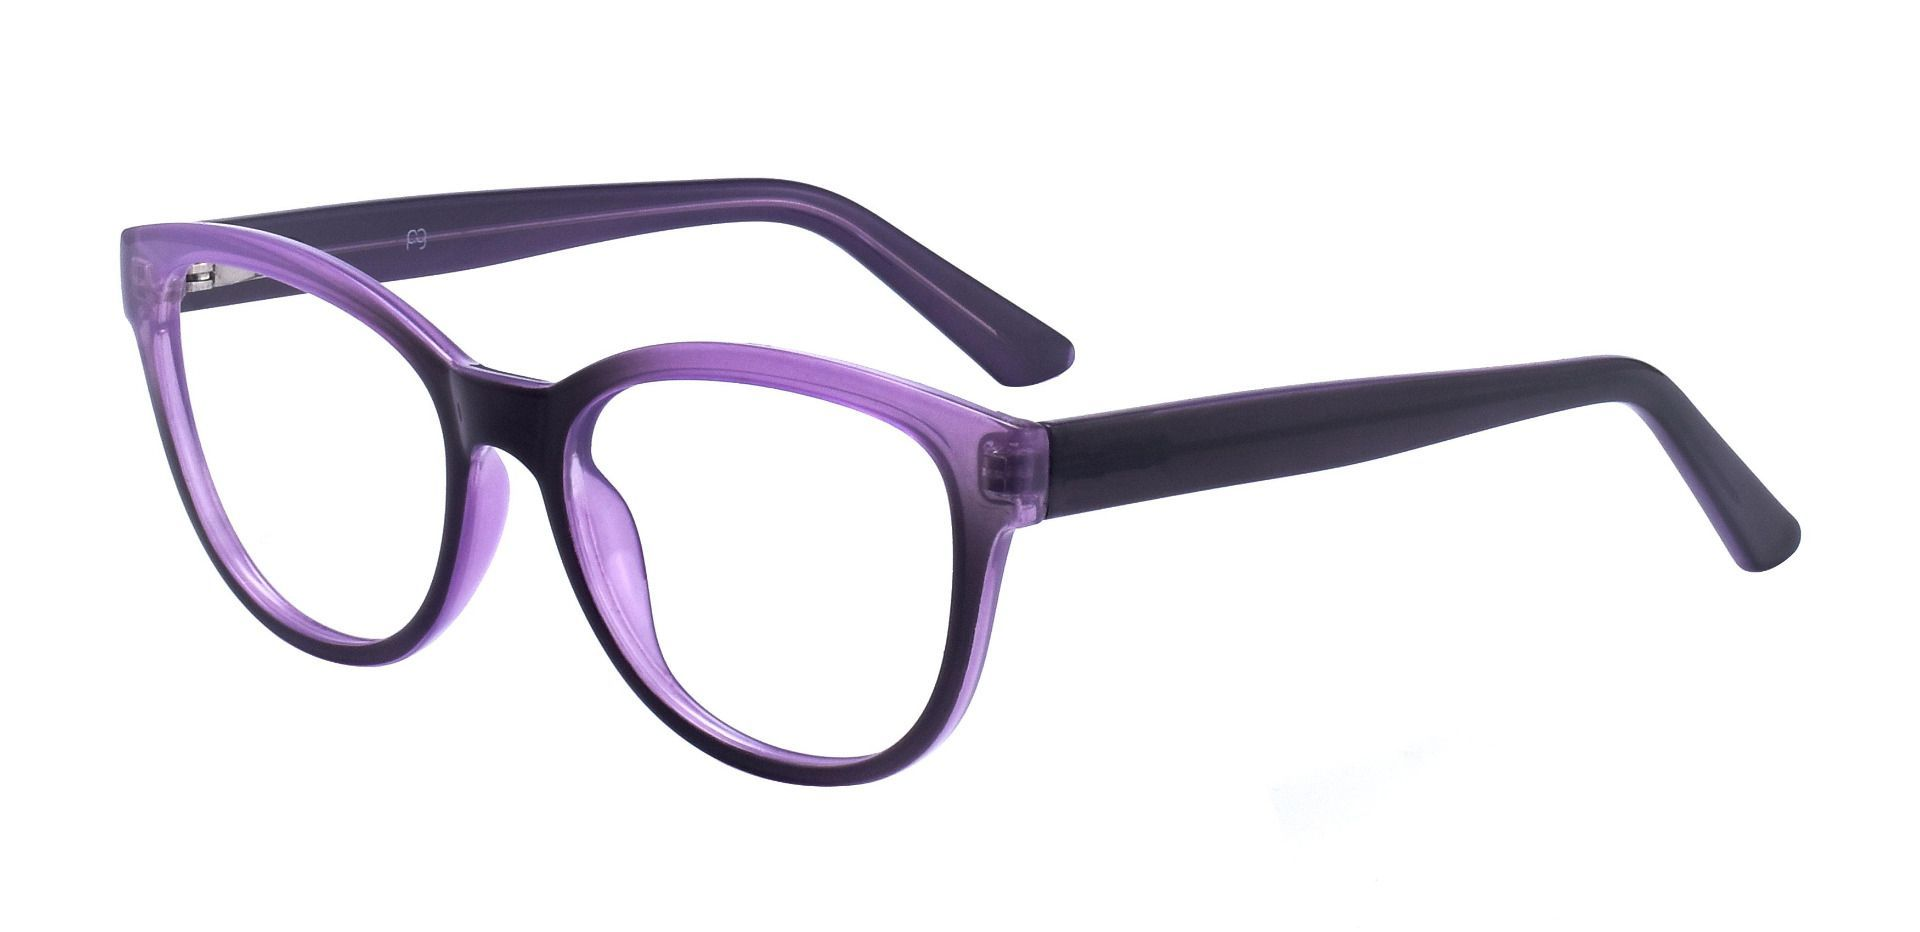 Primrose Oval Progressive Glasses - Purple